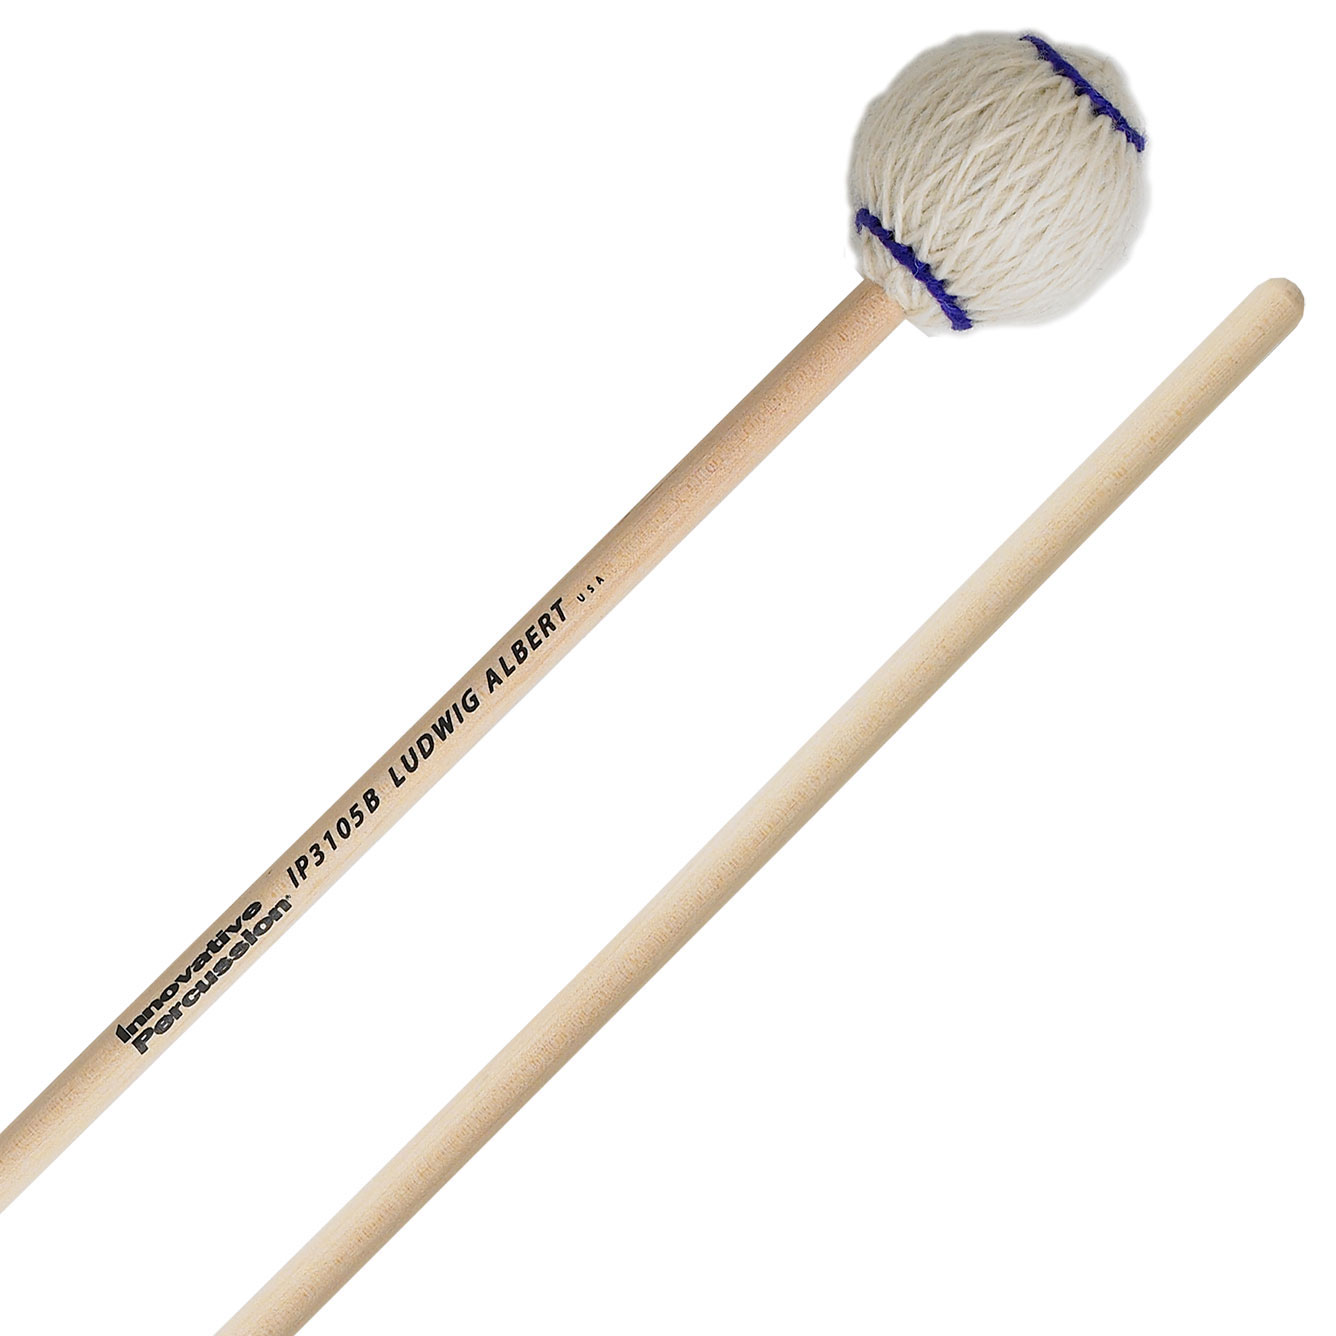 Innovative Percussion Ludwig Albert Signature Medium Marimba Mallets with Birch Shafts